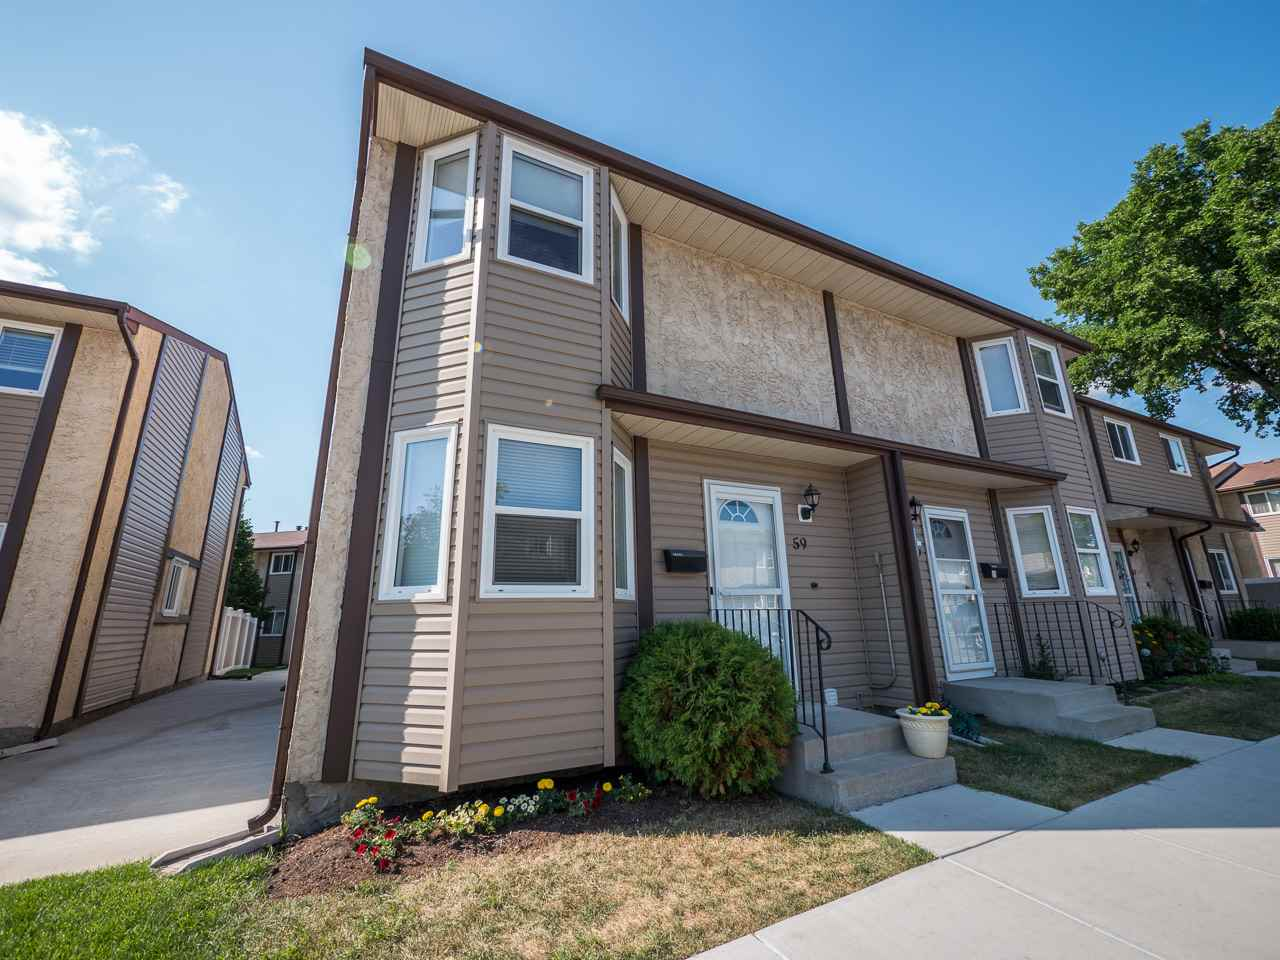 Main Photo: 59 10453 20 Avenue in Edmonton: Zone 16 Townhouse for sale : MLS® # E4072732